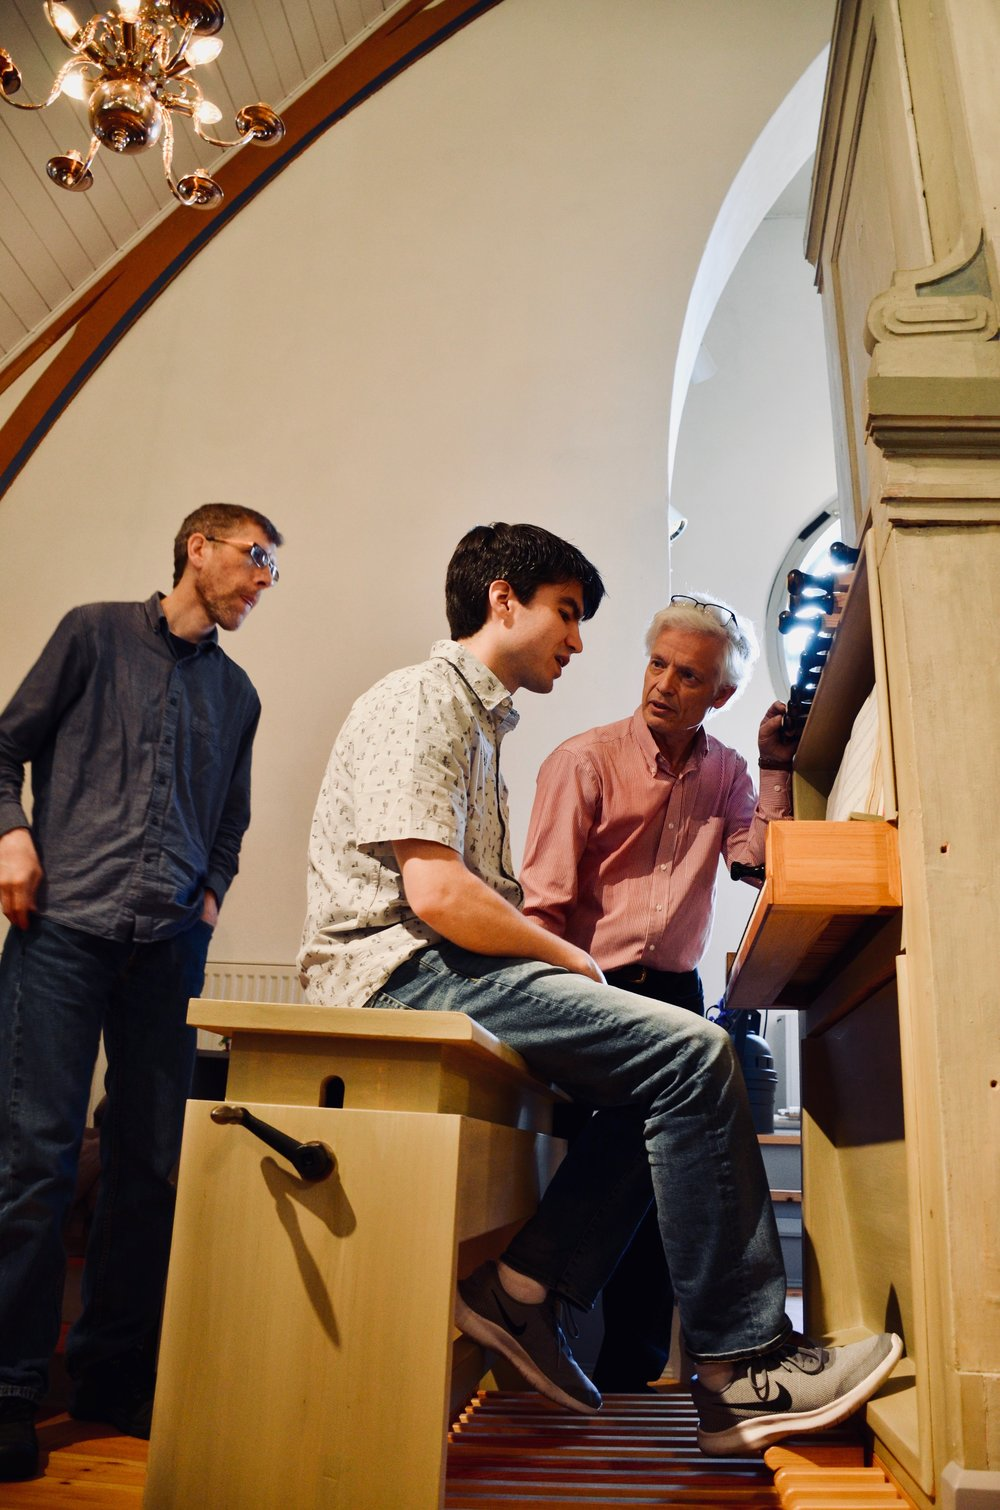 Hans Davidsson coaches Brandon Santini on the 1783 Schiörlin organ in Jonsered, Sweden.